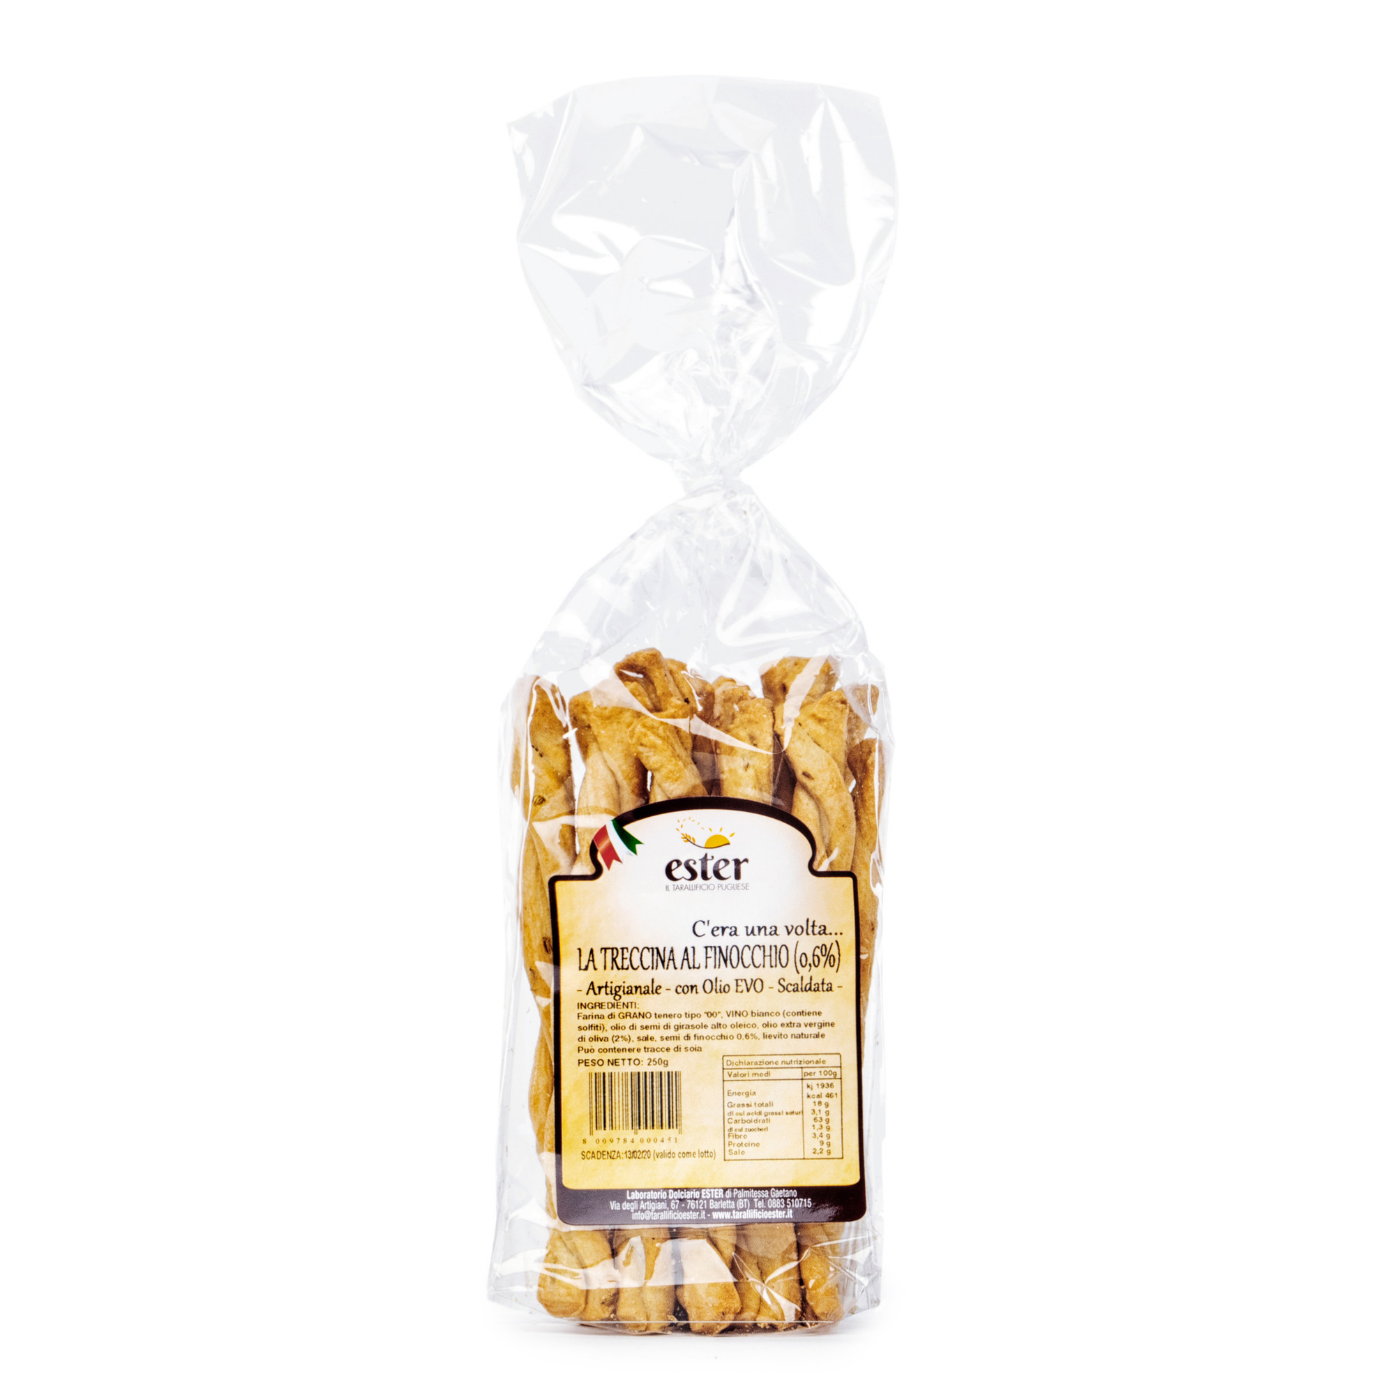 Ester Red Wine Treccine Baked Product Italy wheat,salted snack,biscuit